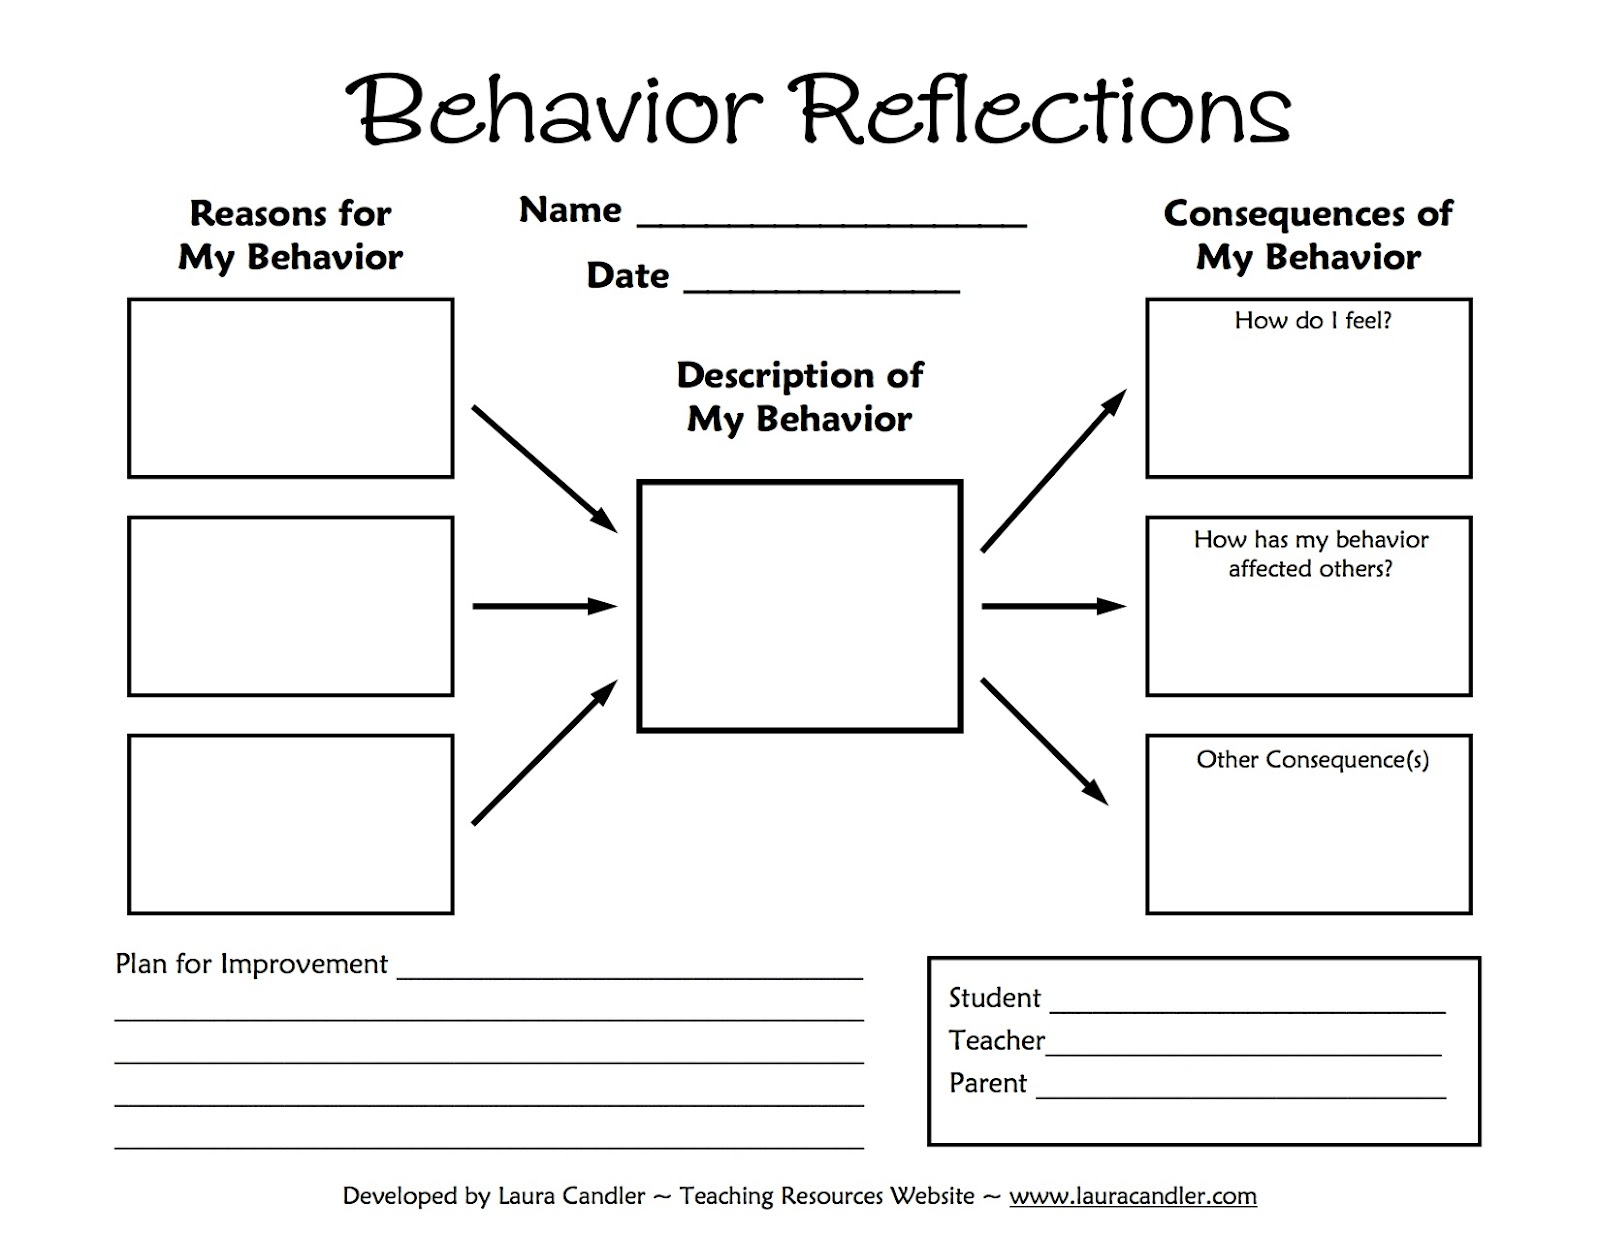 hd good behavior worksheets for kids iik d info get high quality hd good behavior worksheets for kids